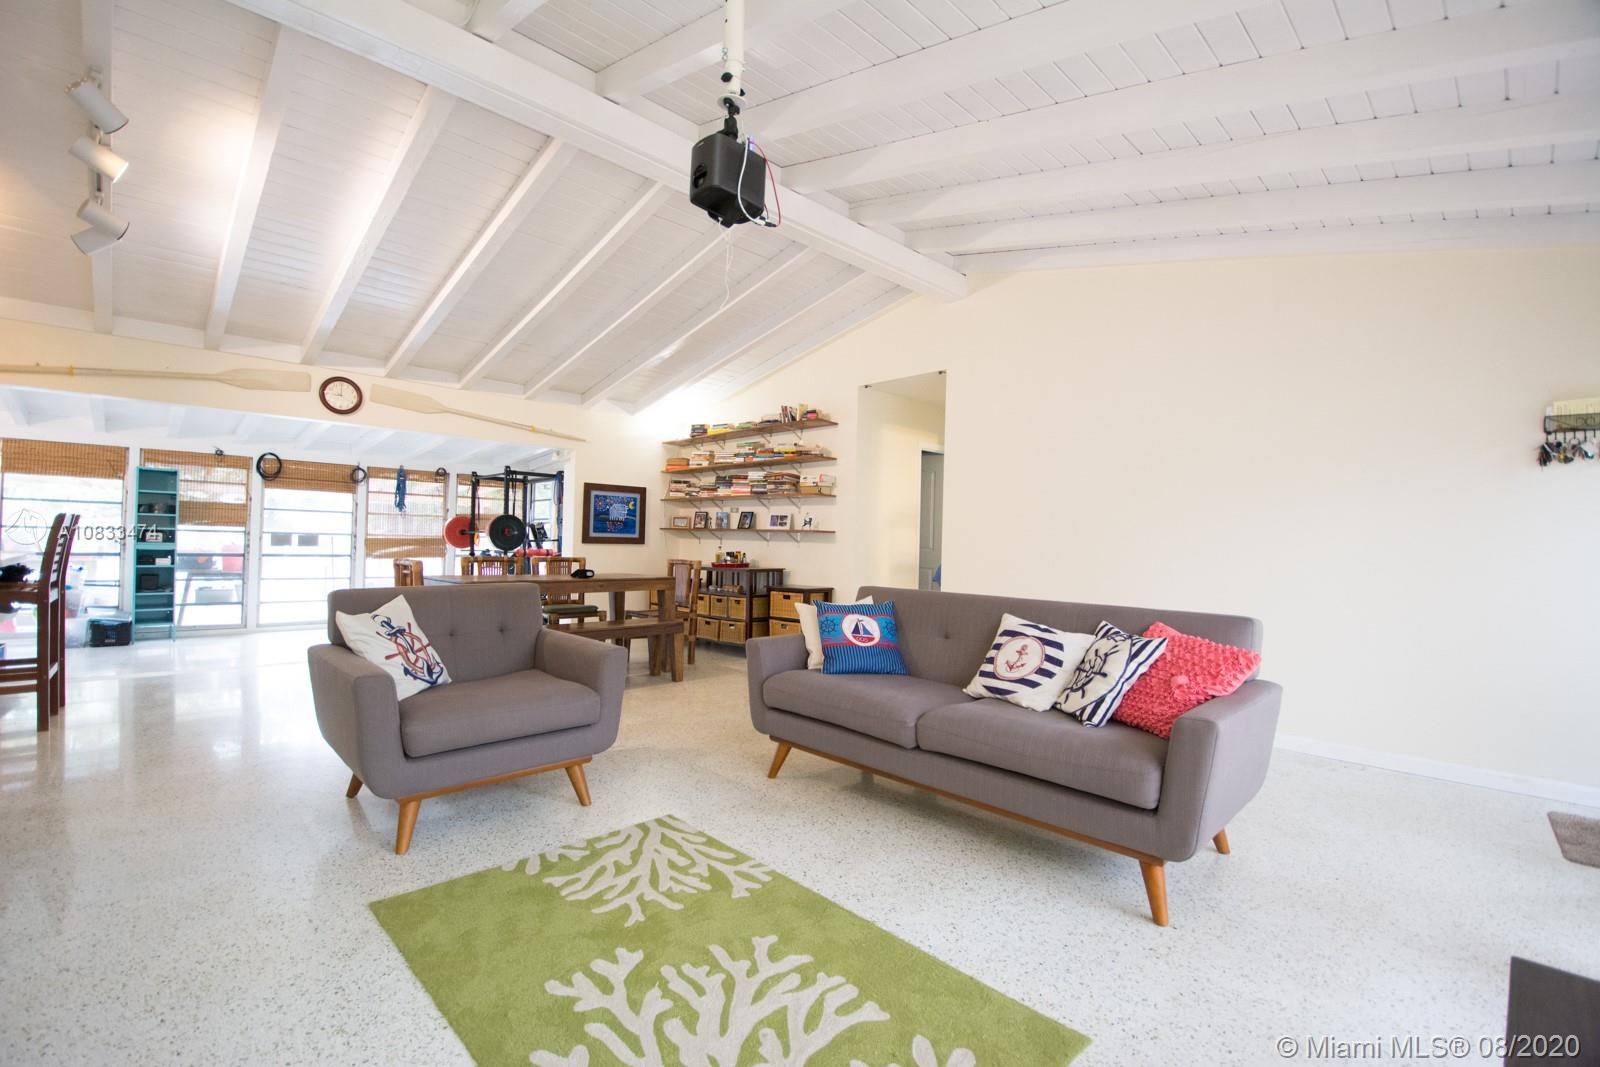 Make this waterfront house your new home on the water! Park your boat or sailboat out back in the deepwater canal and head out the ocean any time you want. There are no fixed bridges! This house is open, airy and inviting with beautiful vaulted ceilings and windows that make it light and bright. Recently updated kitchens and bathrooms, and plenty of room to add an extra bedroom or a pool (Buyer responsible for verifying the viability of a pool). Roof is only 2 years old, deck is brand new! Maximum boat beam 21 feet. Just minutes away from downtown, Las Olas, the Performing Arts Center and I95 while situated in a nice private little cul-de-sac in Gilles Isles. This house is perfect for enjoying the South Florida lifestyle! 75 foot catamaran also for sale.